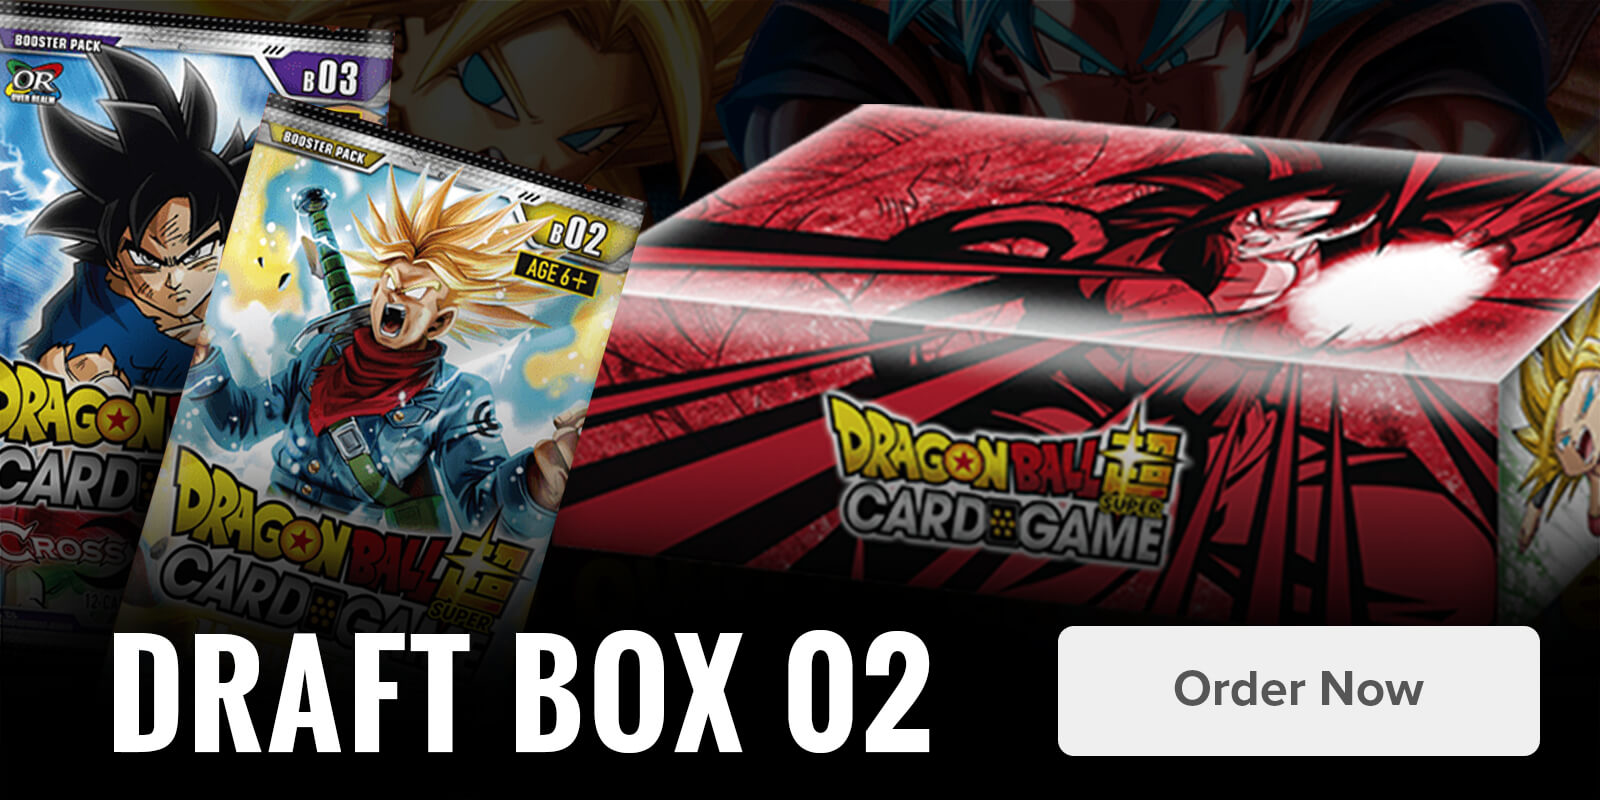 Dragonball Super Draft Box 02